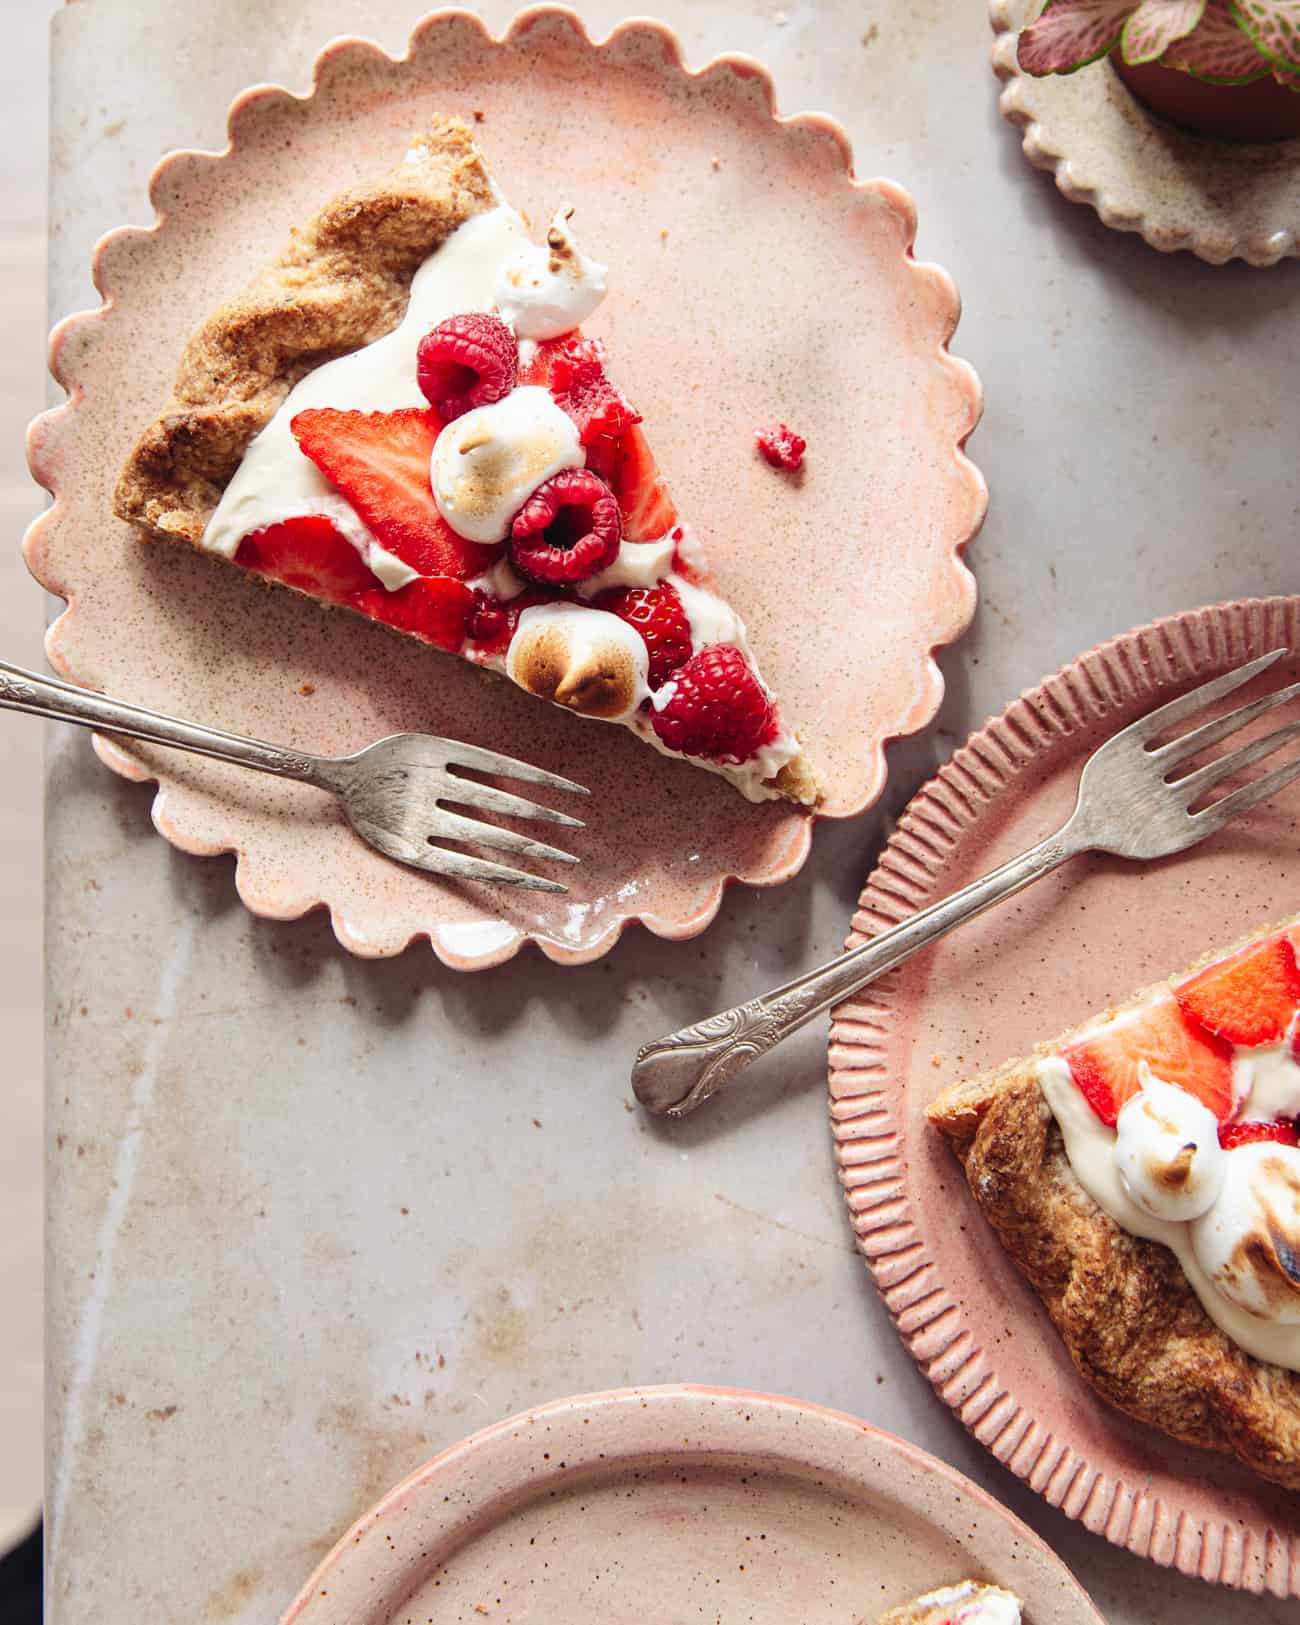 A slice of Eton mess tart on a pink scalloped plate